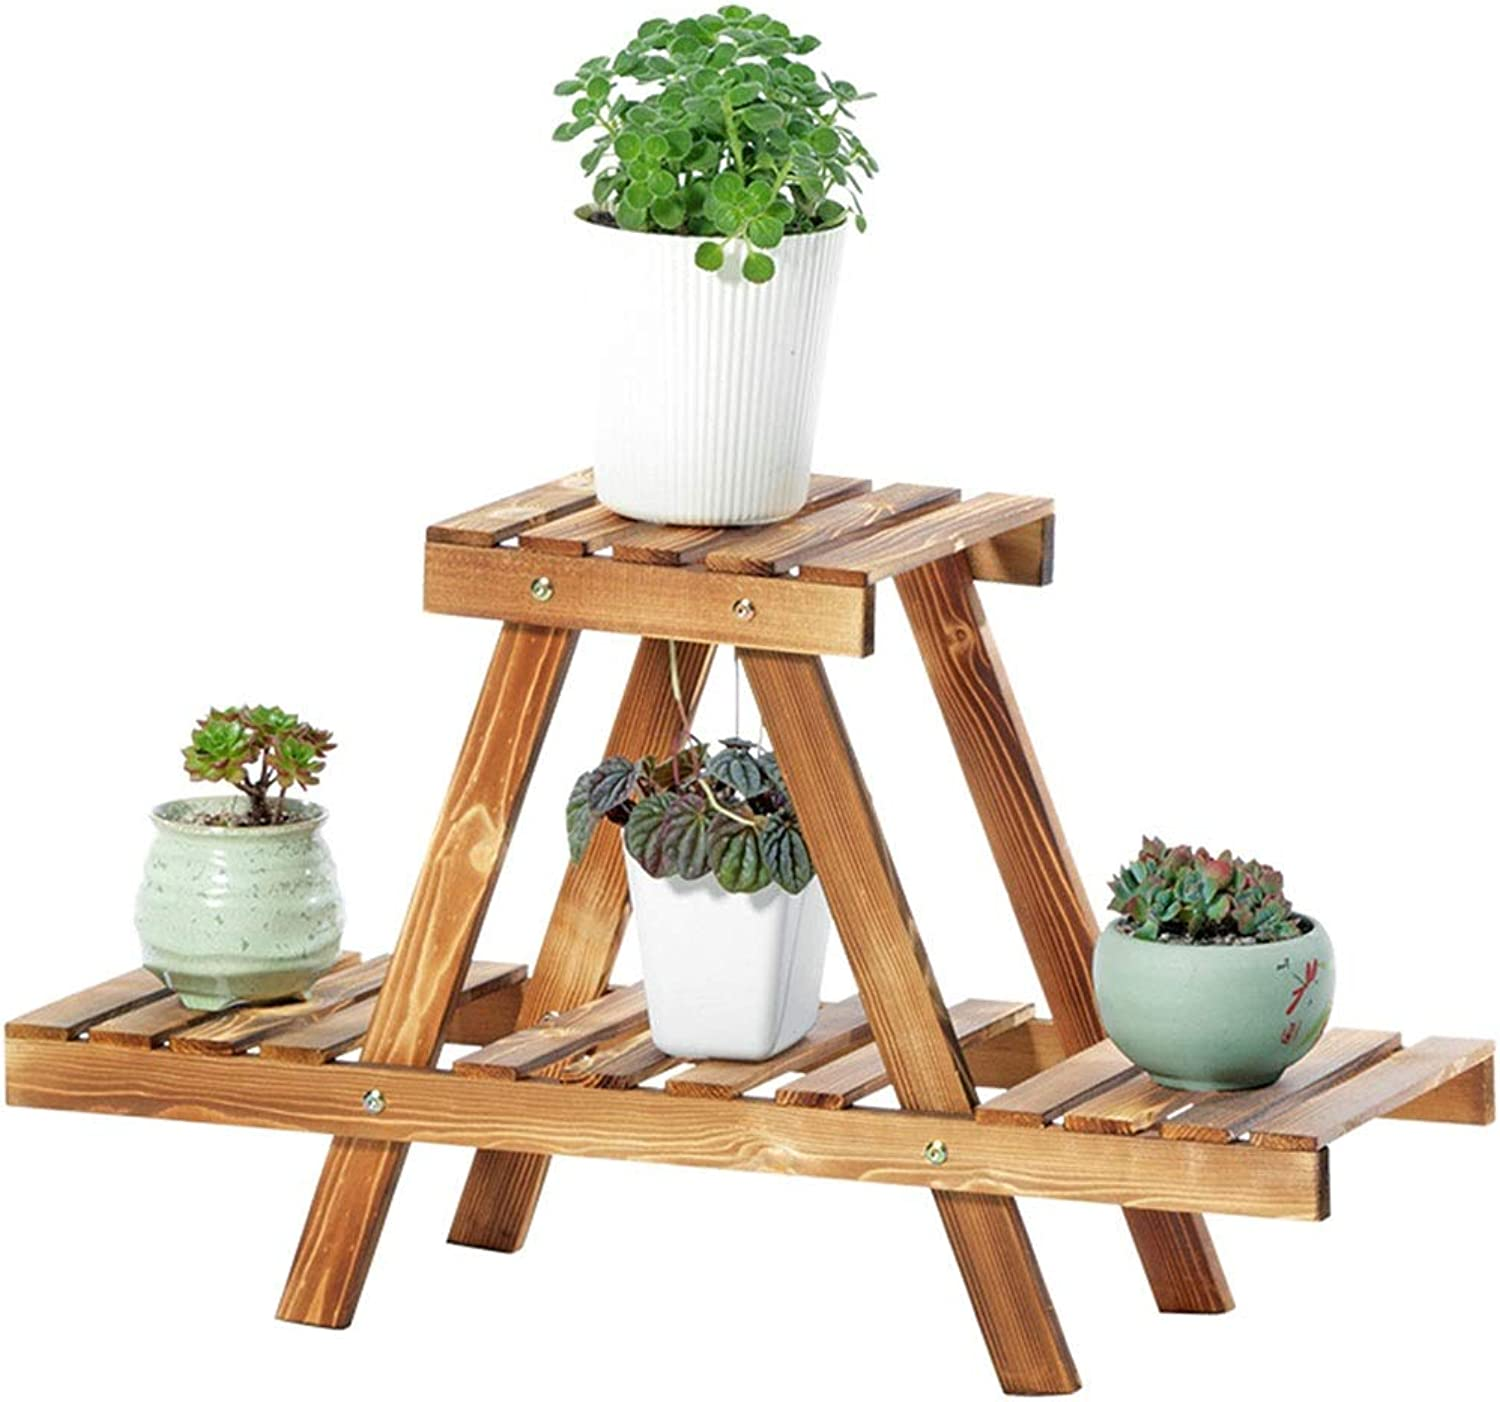 MBD 3-Tier Solid Wooden Succulent Flower Pot Display Rack Plant Storage Shelves for Living Room Office 29.5x10.2x17.7in